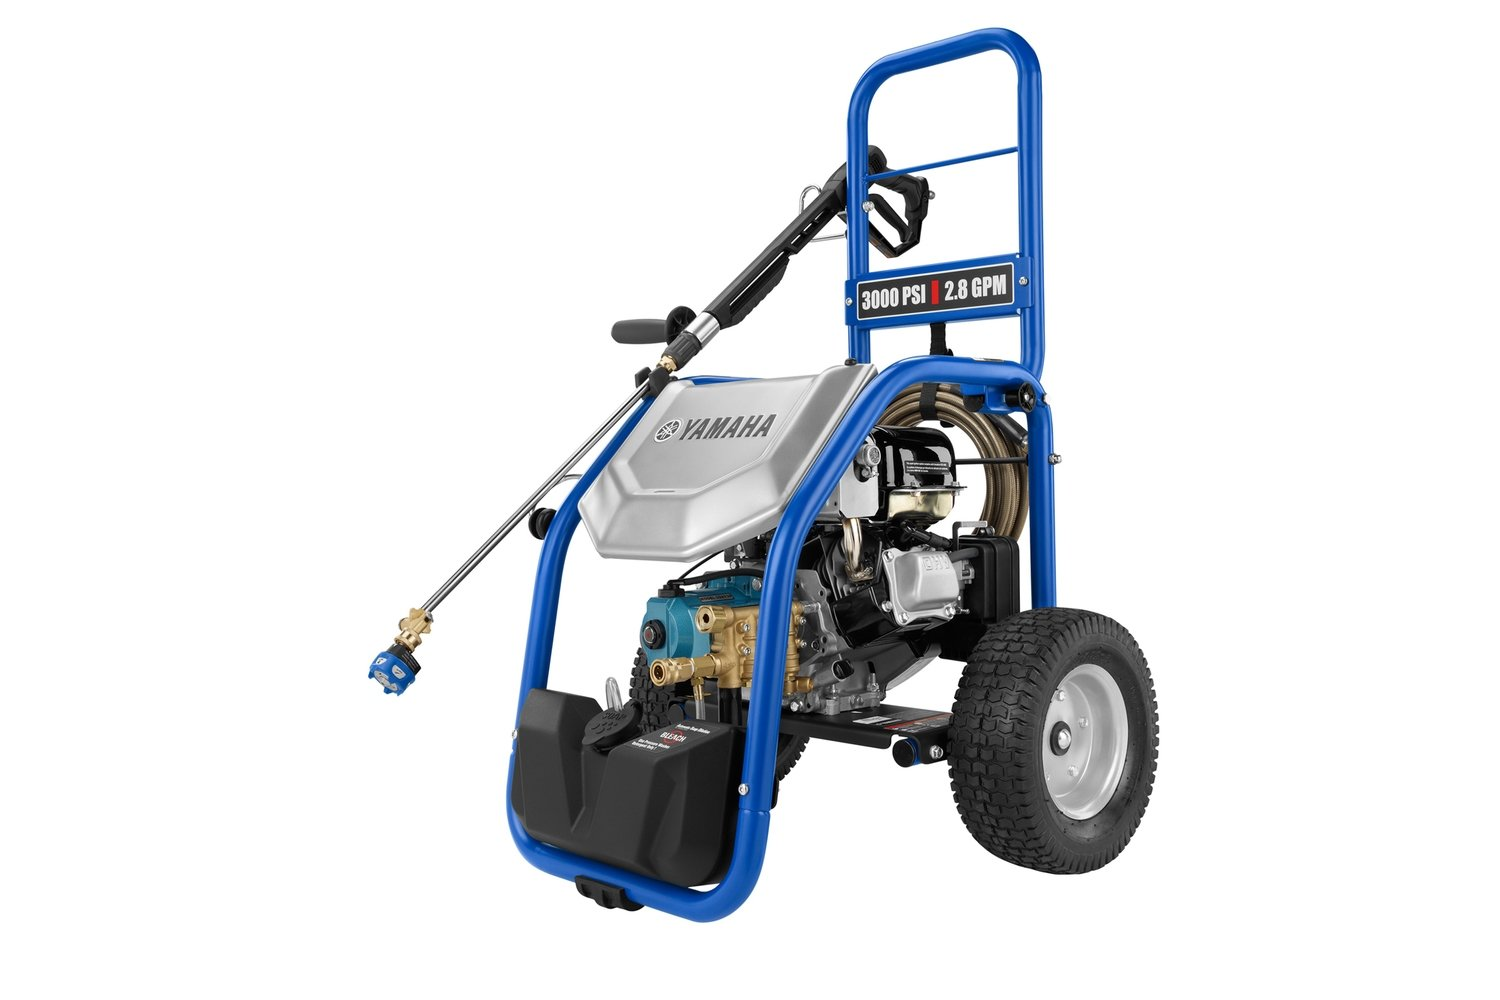 Yamaha® PW3028 Pressure Washer